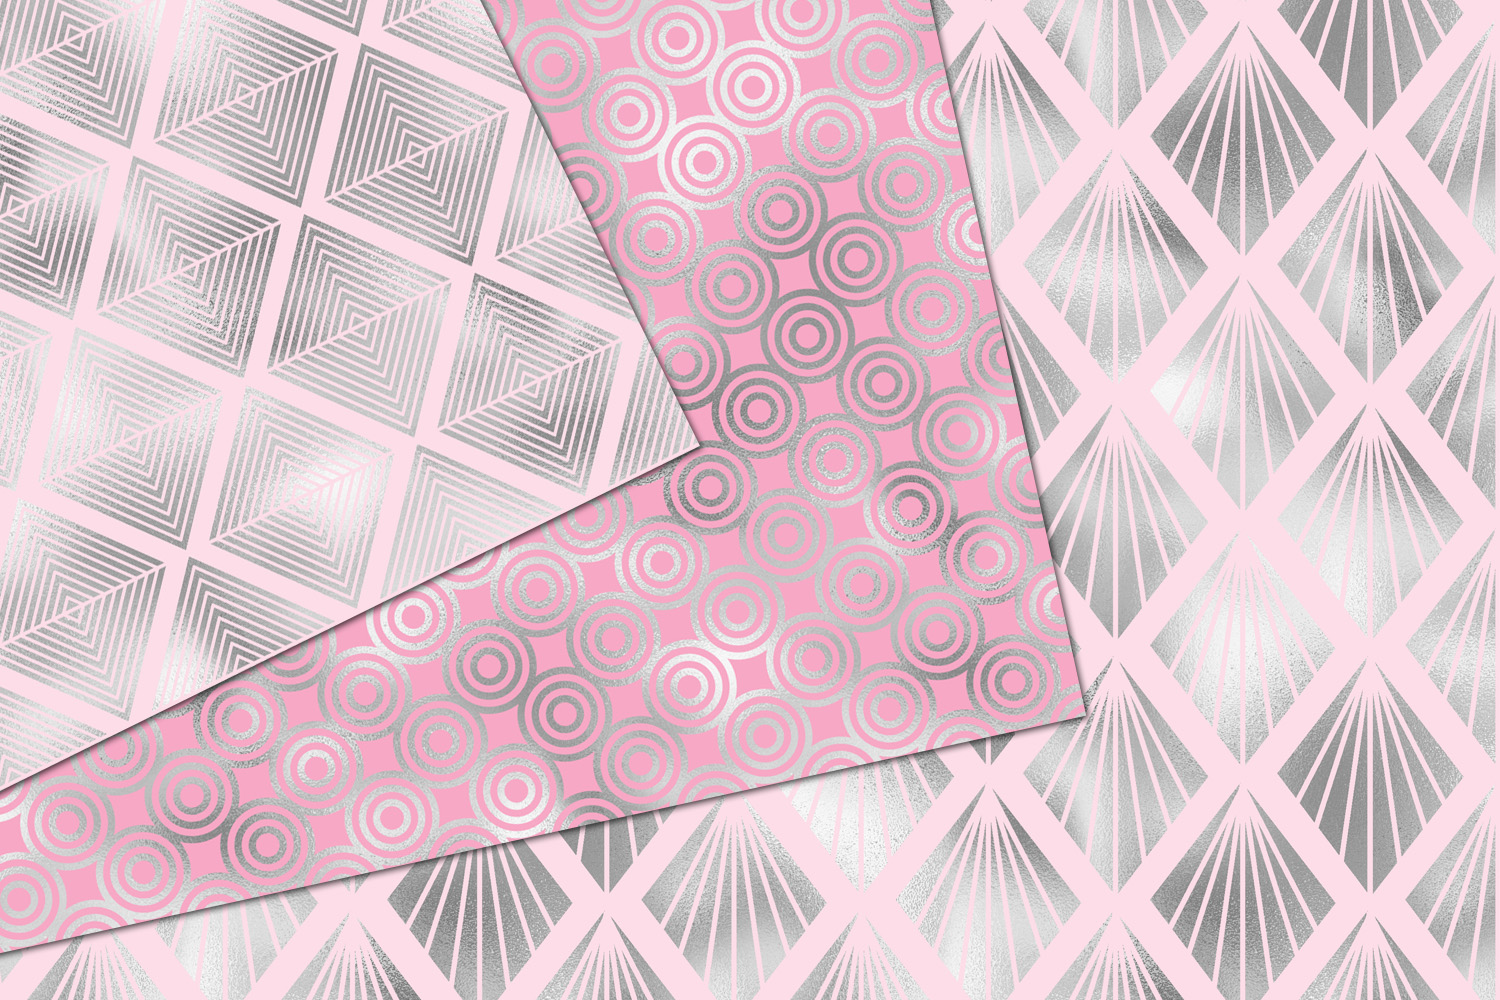 Pink and Silver Art Deco Digital Paper example image 3